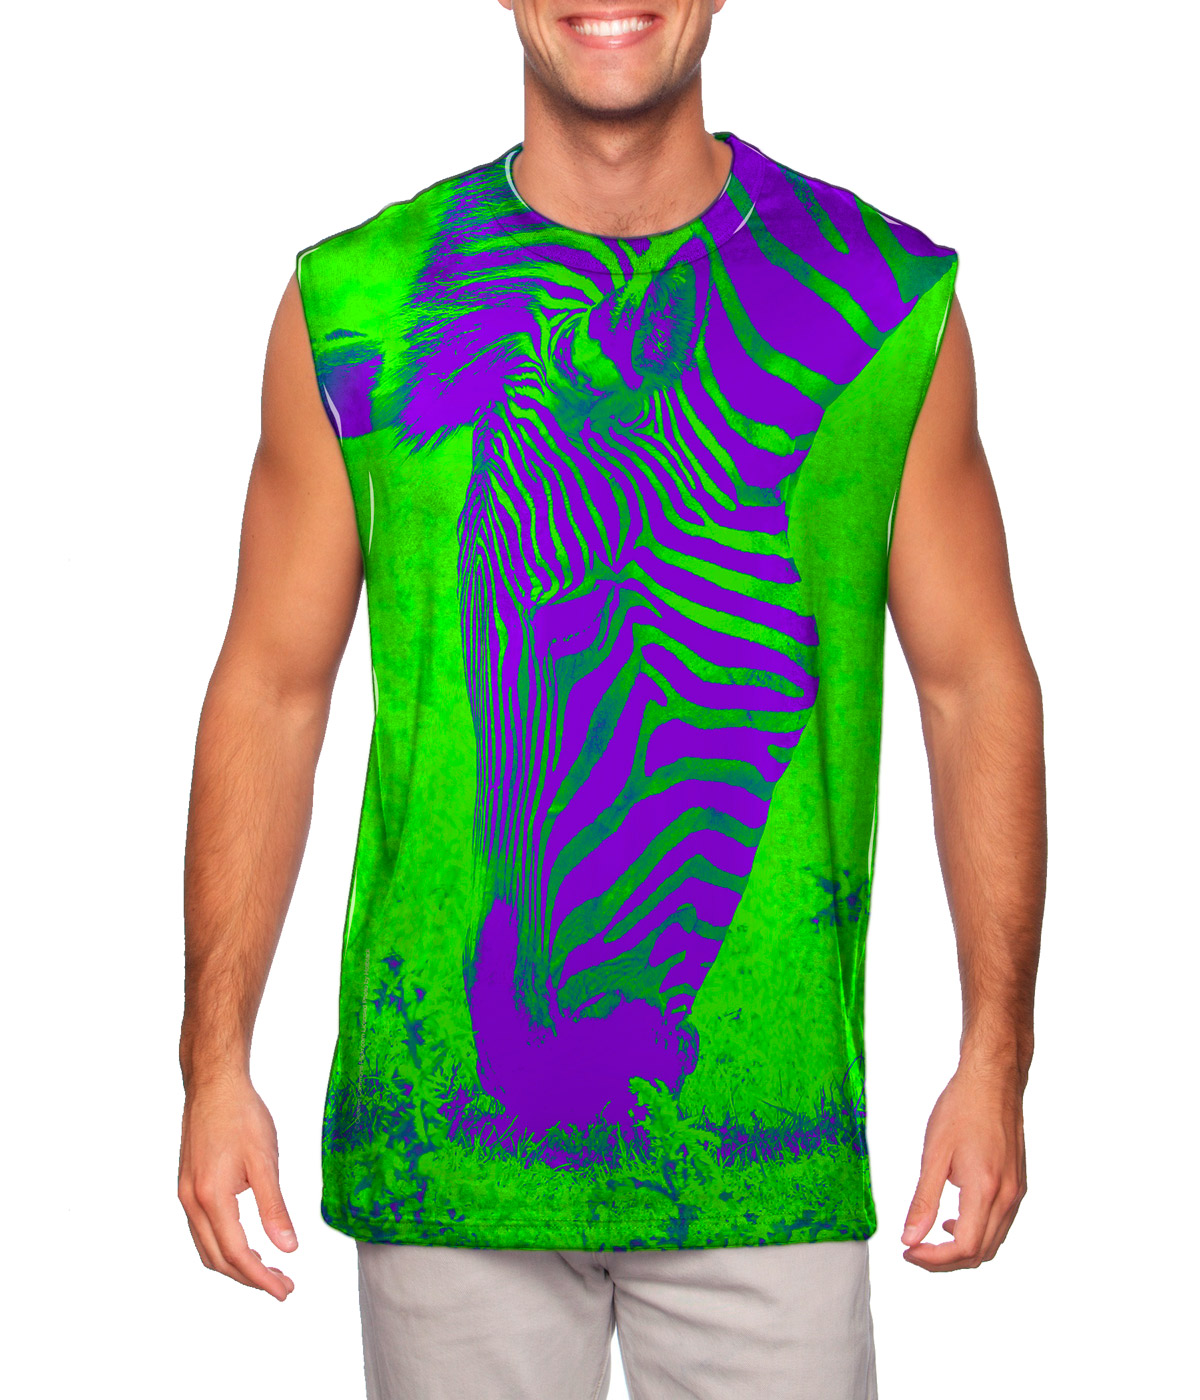 Yizzam neon purple green zebra new men muscle tee shirt for Neon green shirts for men